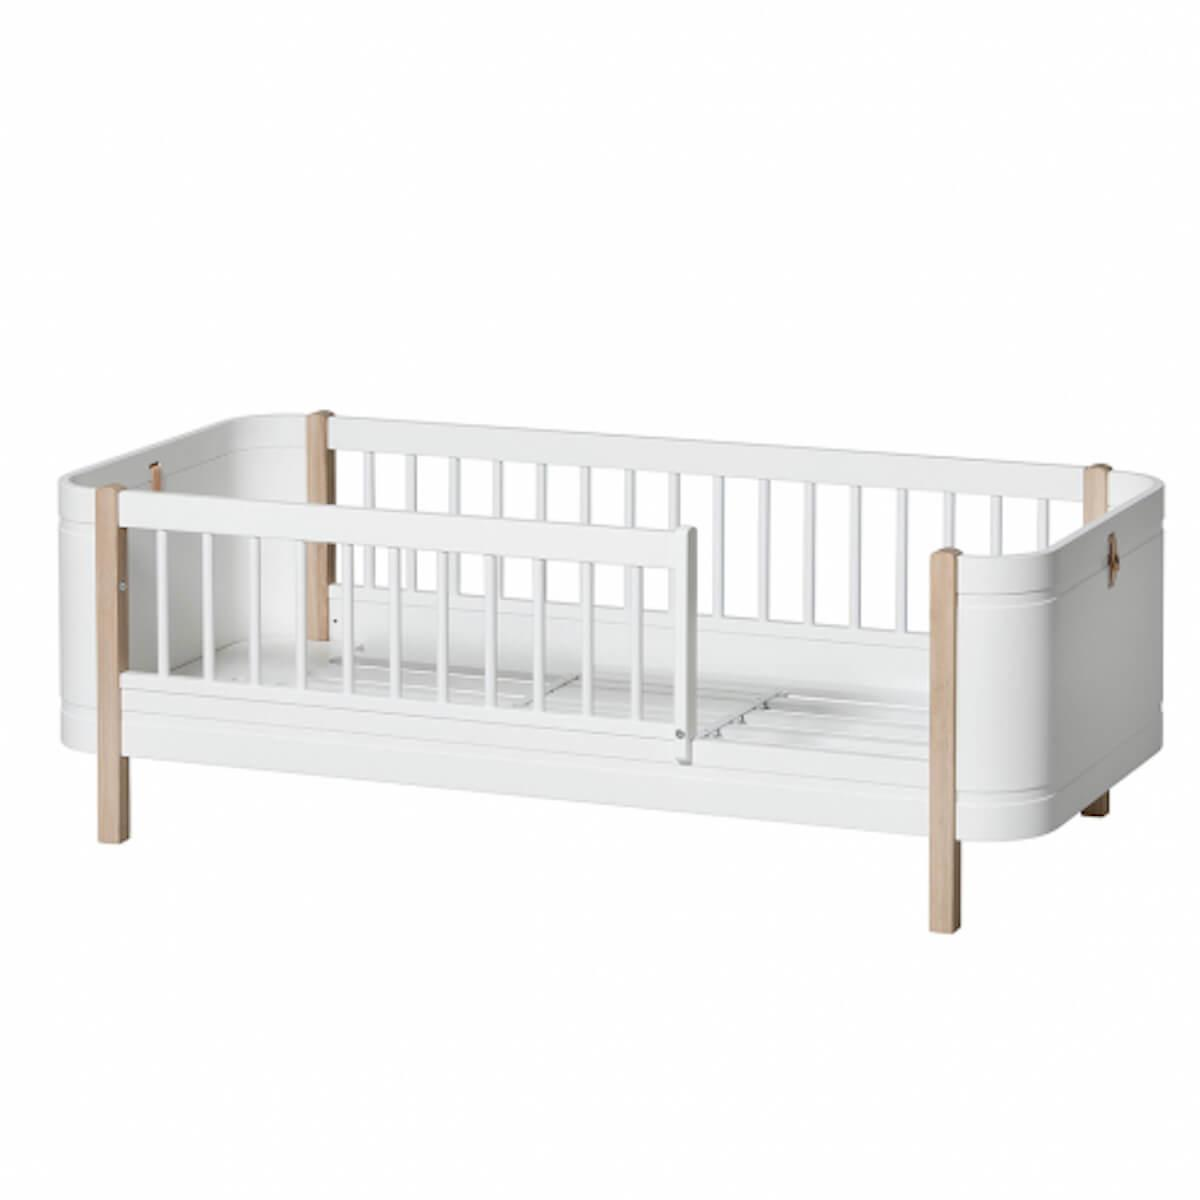 Cama Mini+ 68x162cm Oliver Furniture blanco-roble